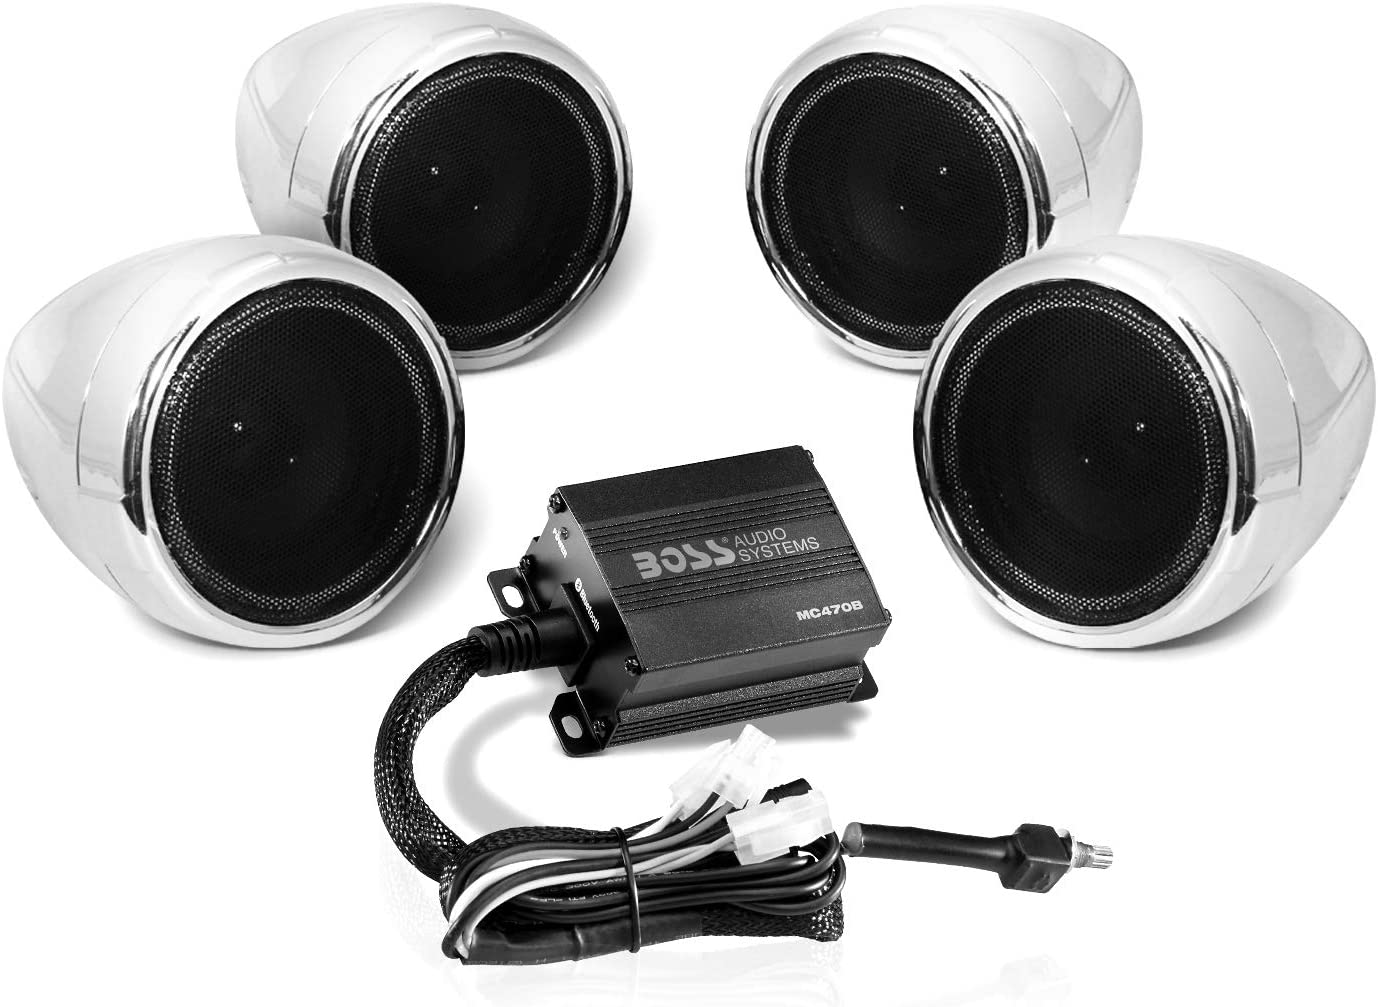 Boss Audio Systems MC10B Motorcycle Bluetooth Speaker System - Class D  Compact Amplifier, 10 Inch Weatherproof Speakers, Volume Control, Great for  Use